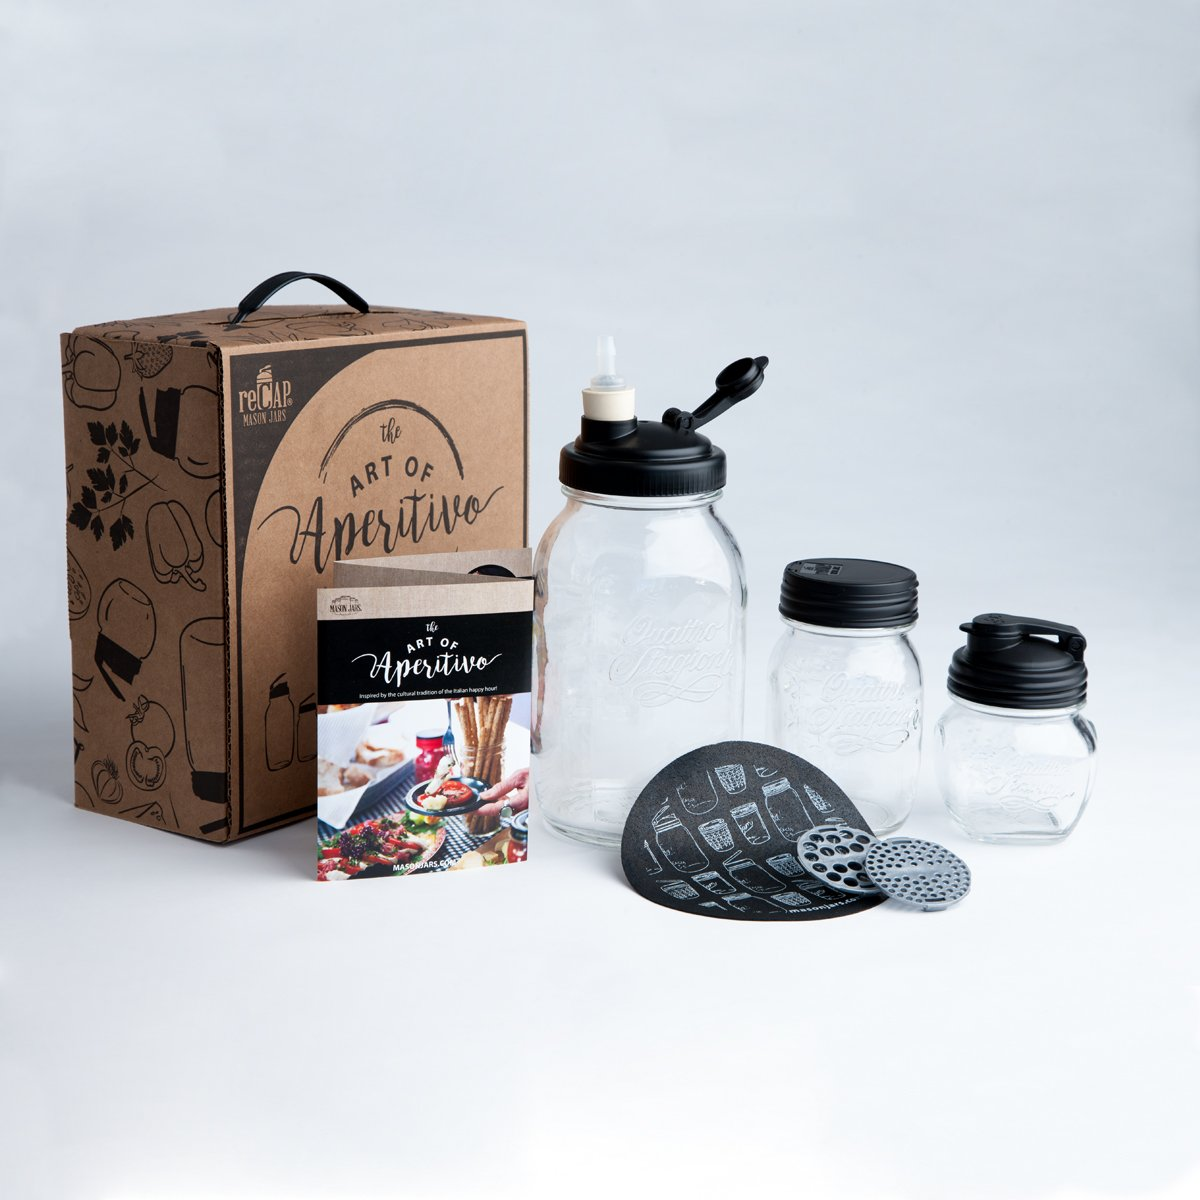 reCAP Mason Jars Art of Aperitivo: Italian Happy Hour Gift Set with Bormioli Jars and Waterless Airlock Fermentation Kit